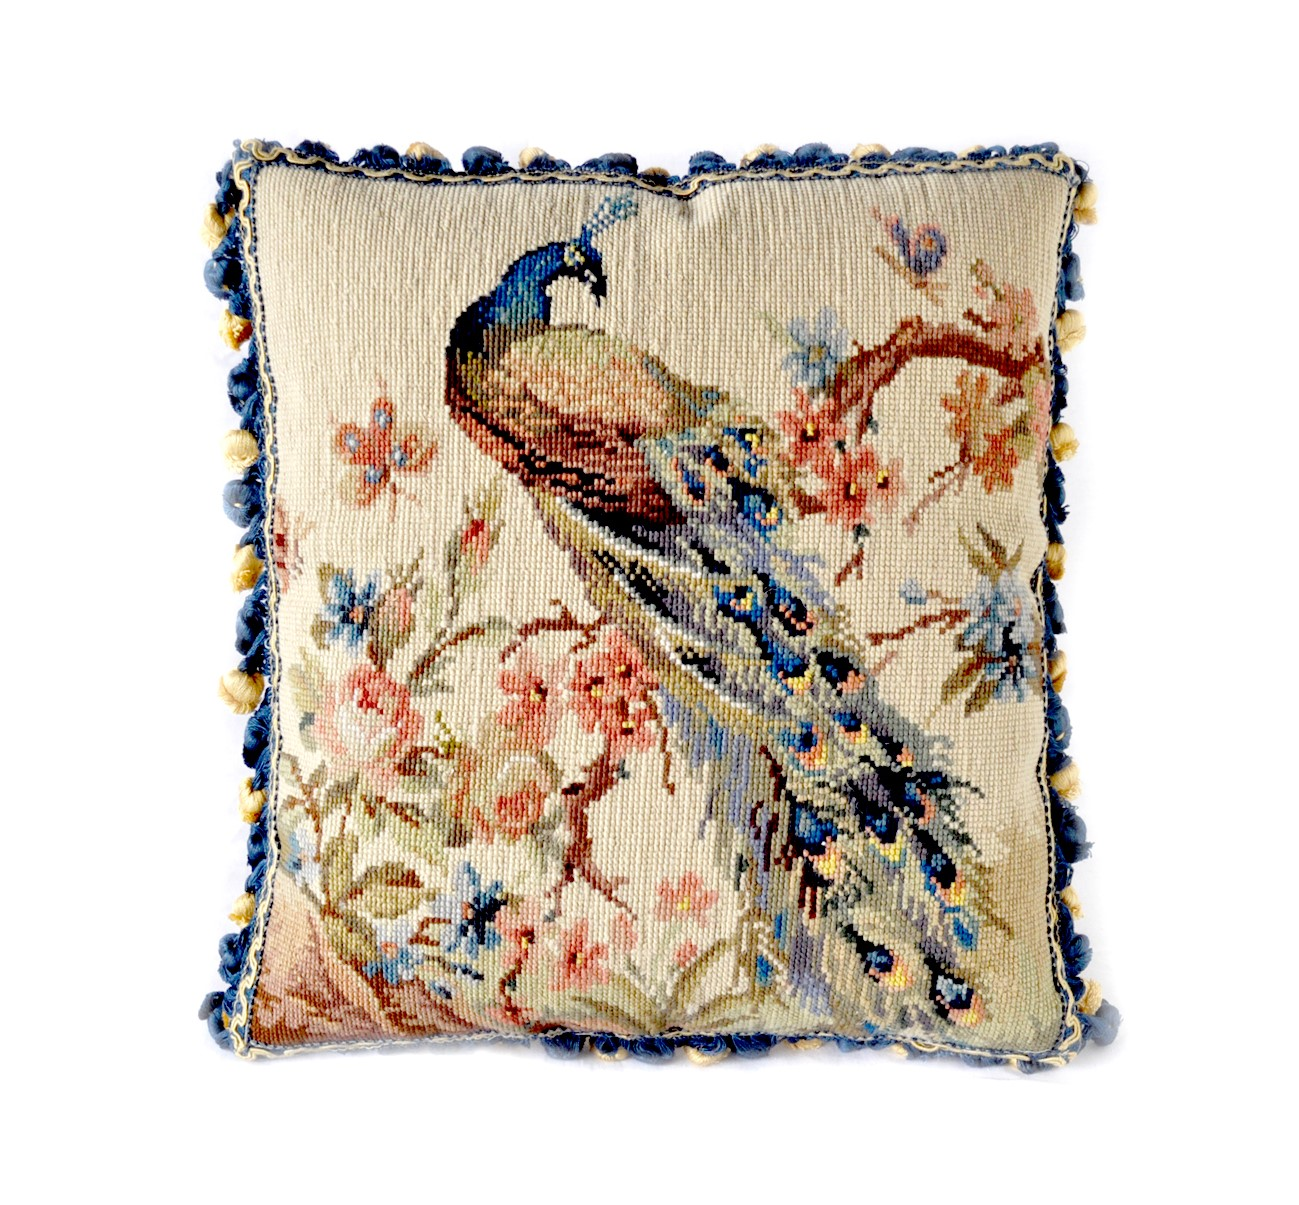 16″x16″ Needlepoint Peacock on Plum Pillow Cover 12980904